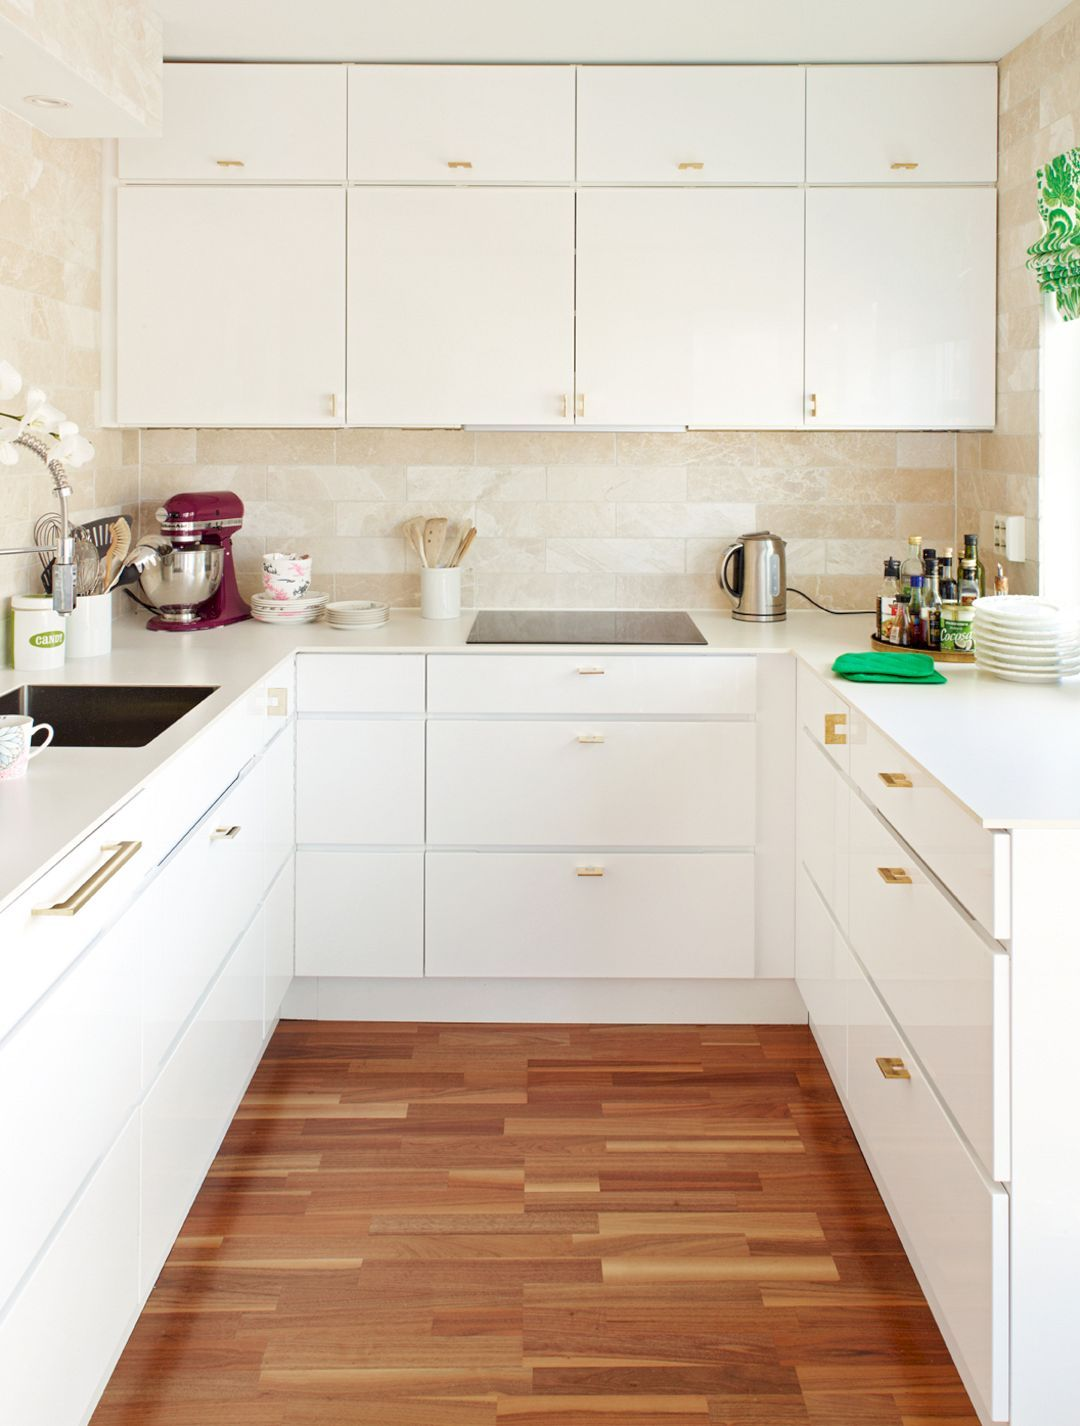 Charmant White Modern Kitchen Cabinets And Gold Brass Modern Drawer Pulls But Iu0027d  Change The Floors To Chevron Tile Or Wood Planks.